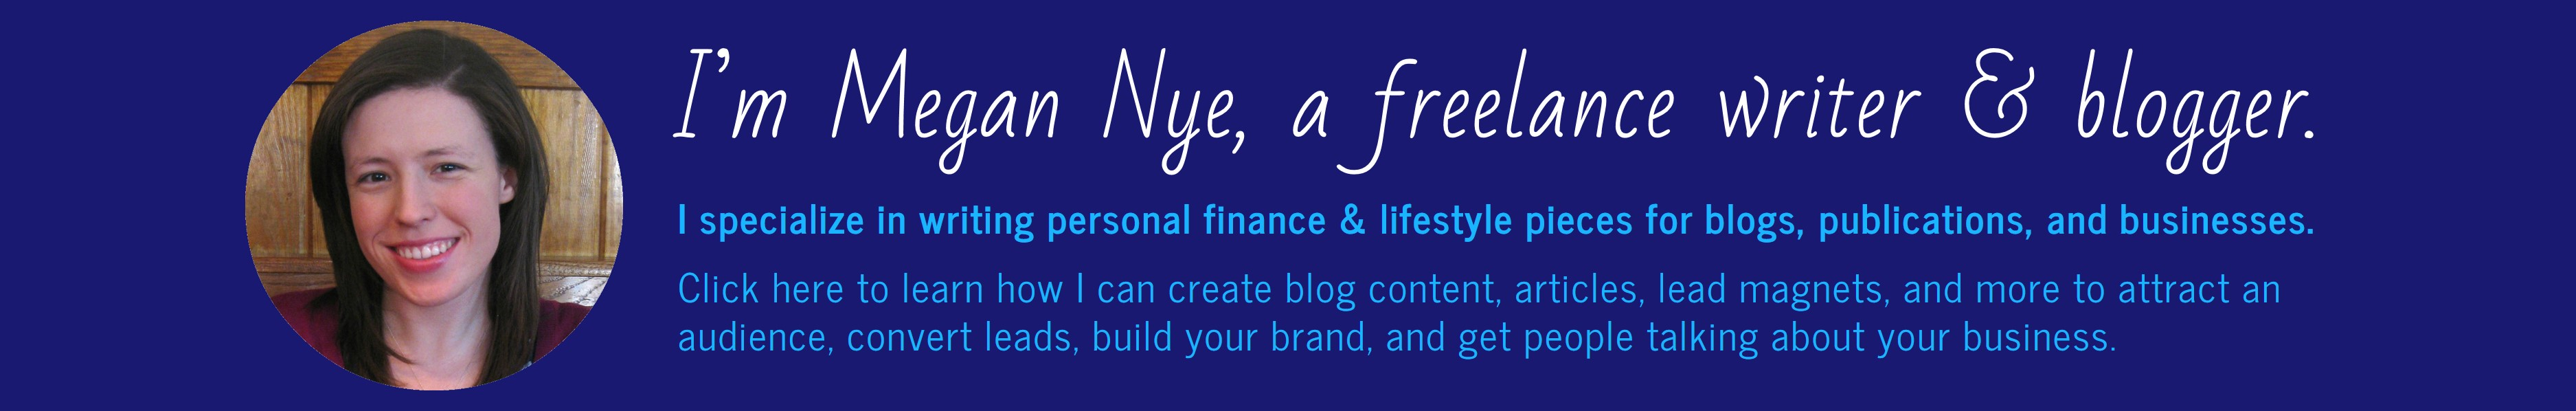 I'm Megan Nye, a freelance writer & blogger. I specialize in writing personal finance & lifestyle pieces for blogs, publications, and businesses. Click here to learn how I can create blog content, articles, lead magnets, and more to attract an audience, convert leads, build your brand, and get people talking about your business.